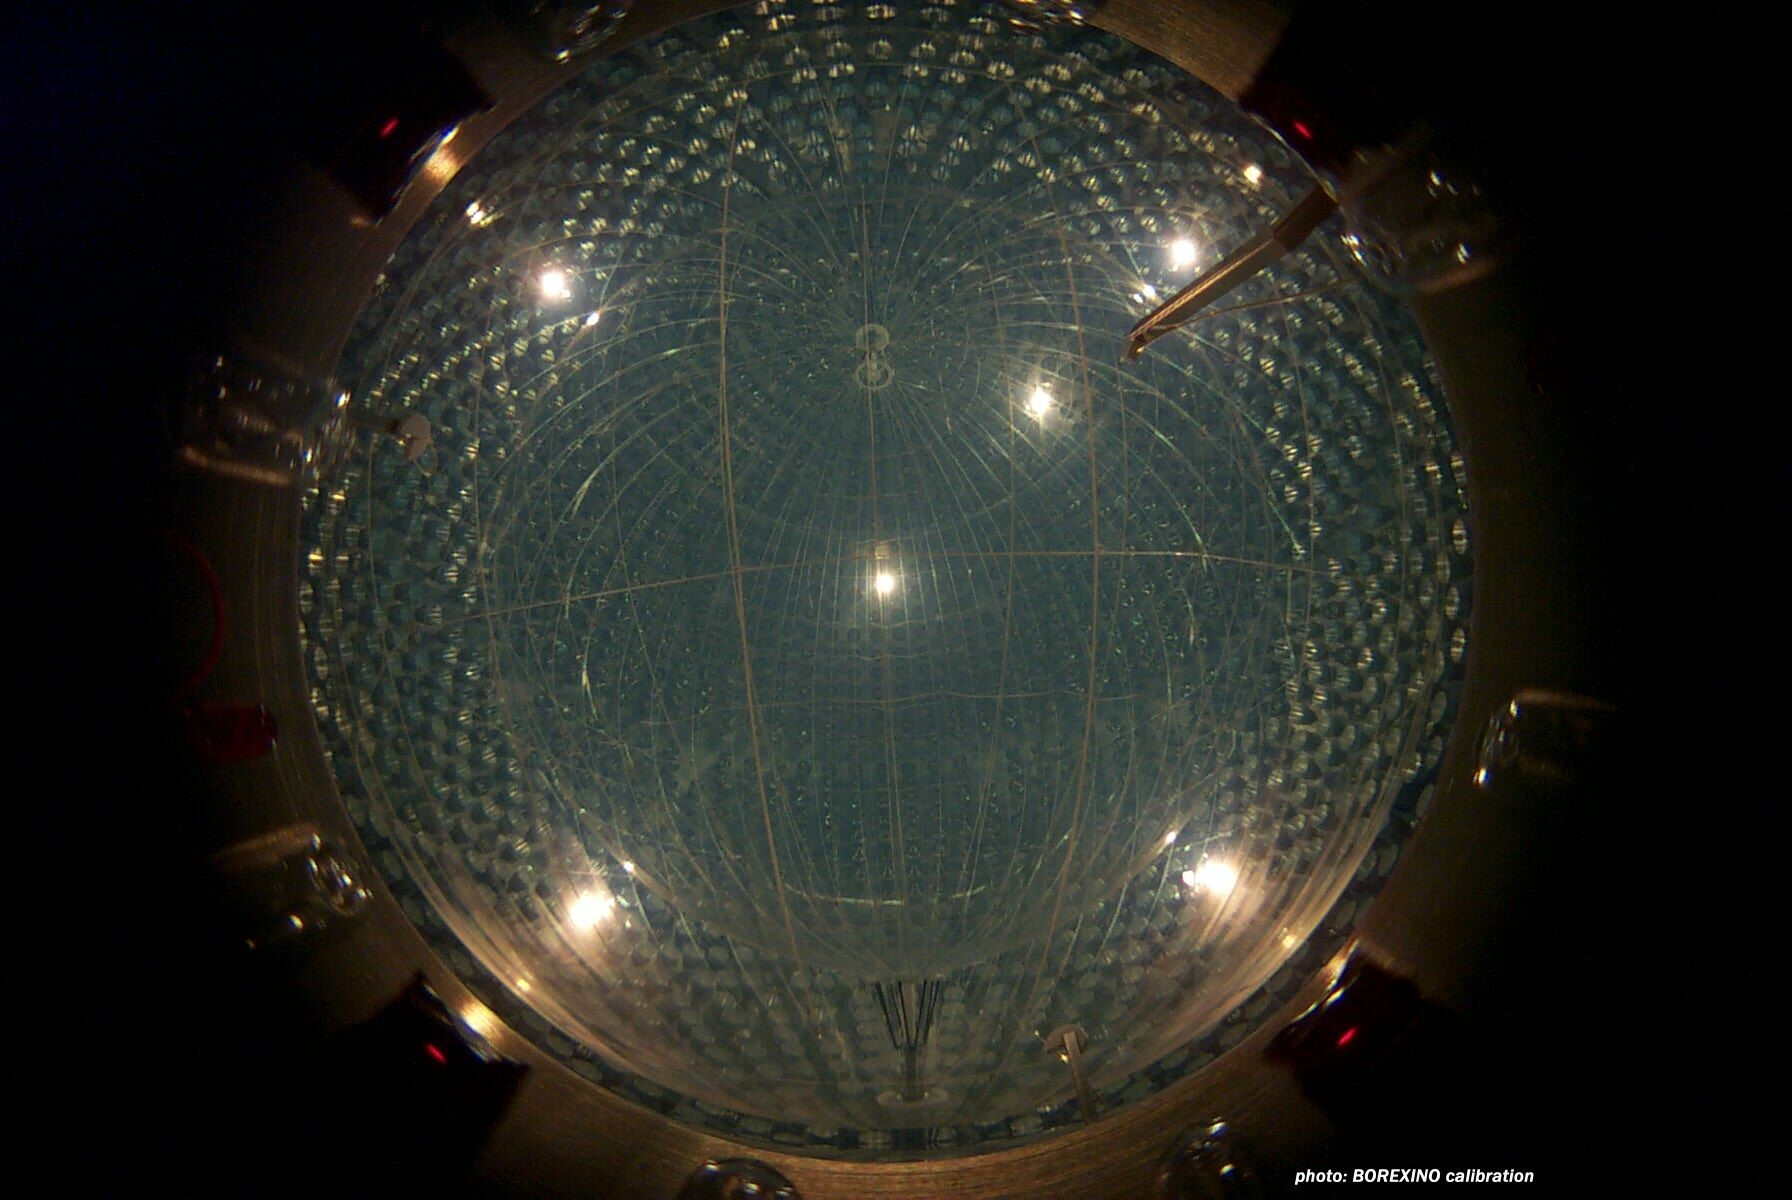 Neutrinos prove that the sun is making a second type of fusion in its core